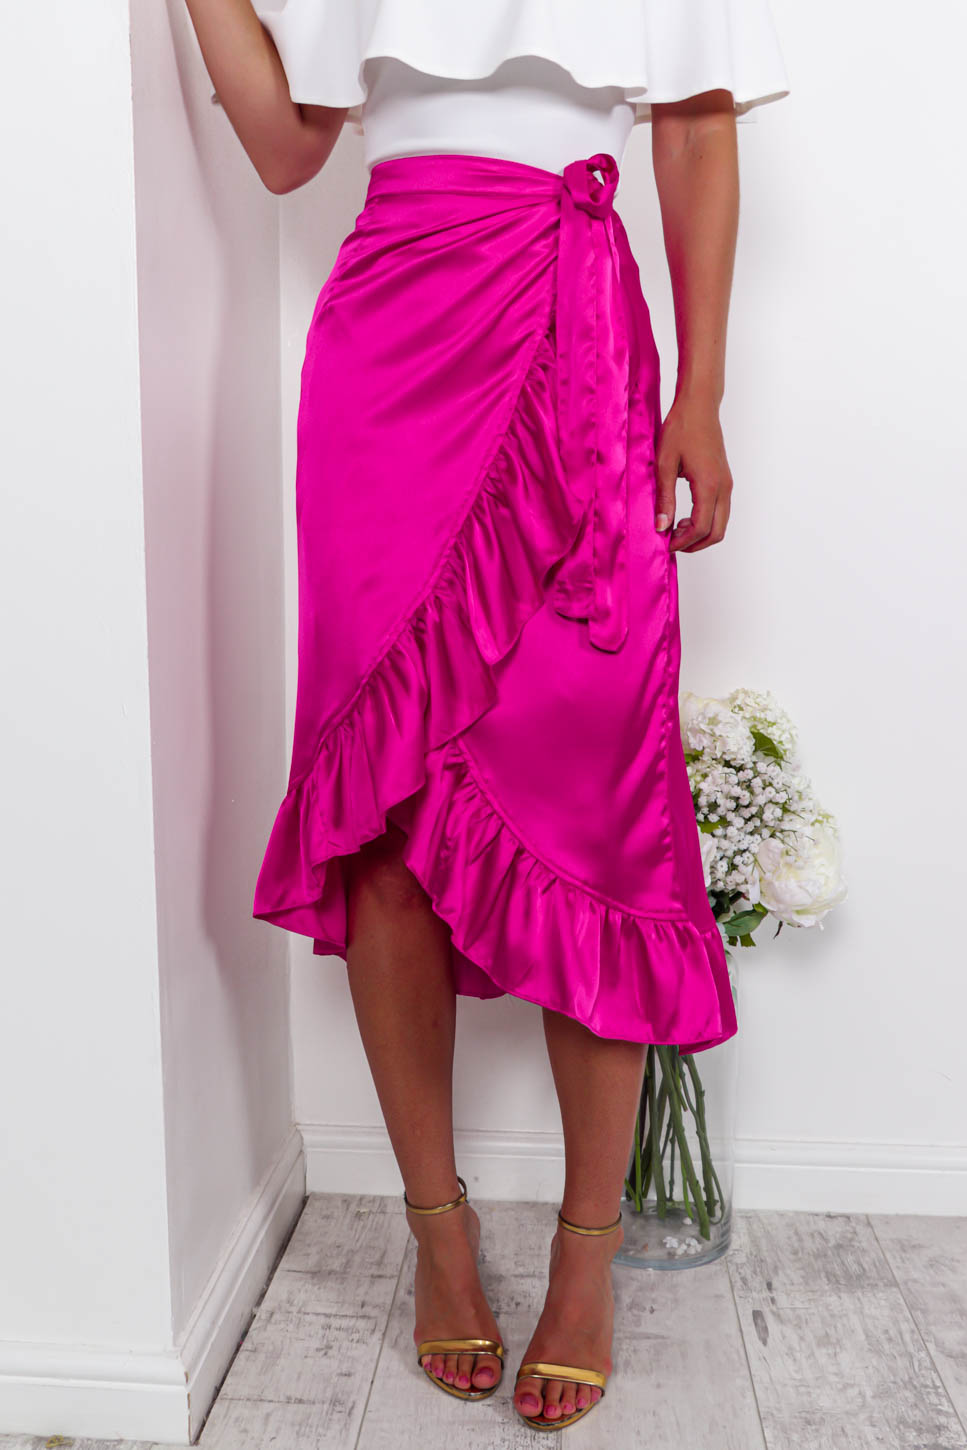 Thrilled For You - Wrap Skirt In HOTPINK